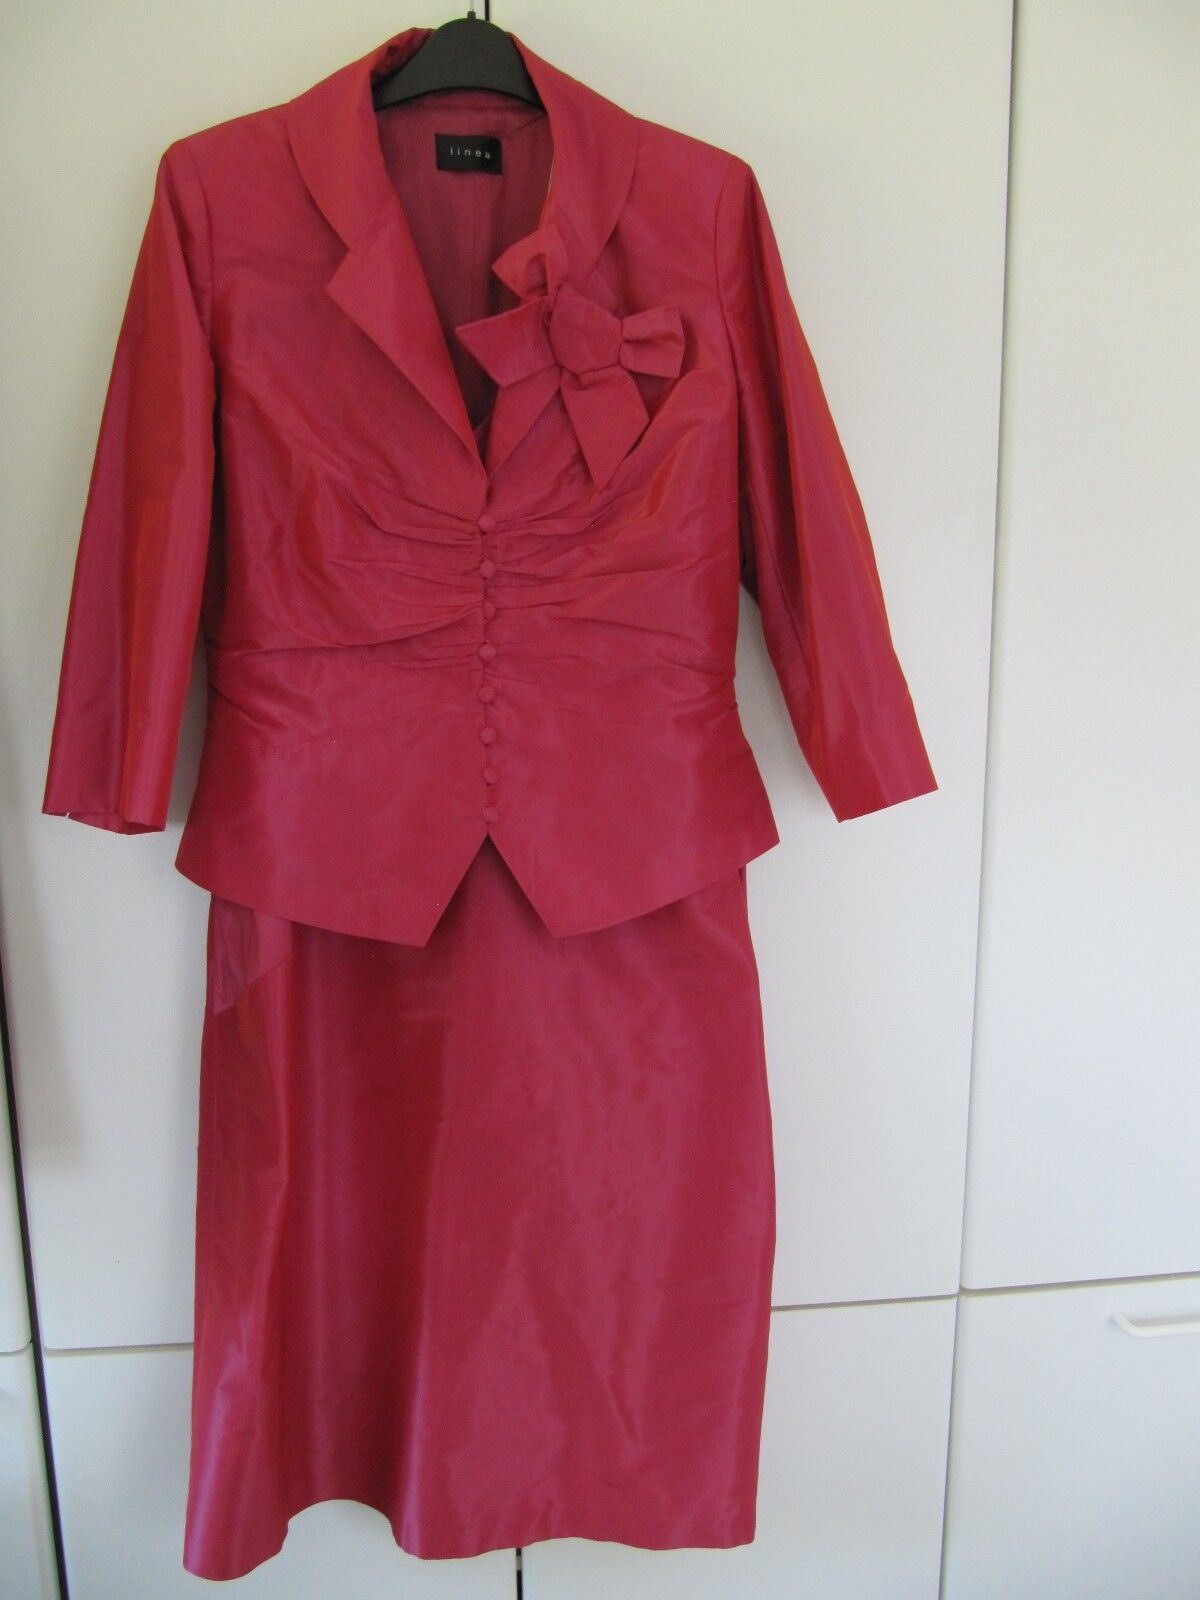 MOB Linea Deep Raspberry Pink Dress & Jacket - Size 14 - New with tags